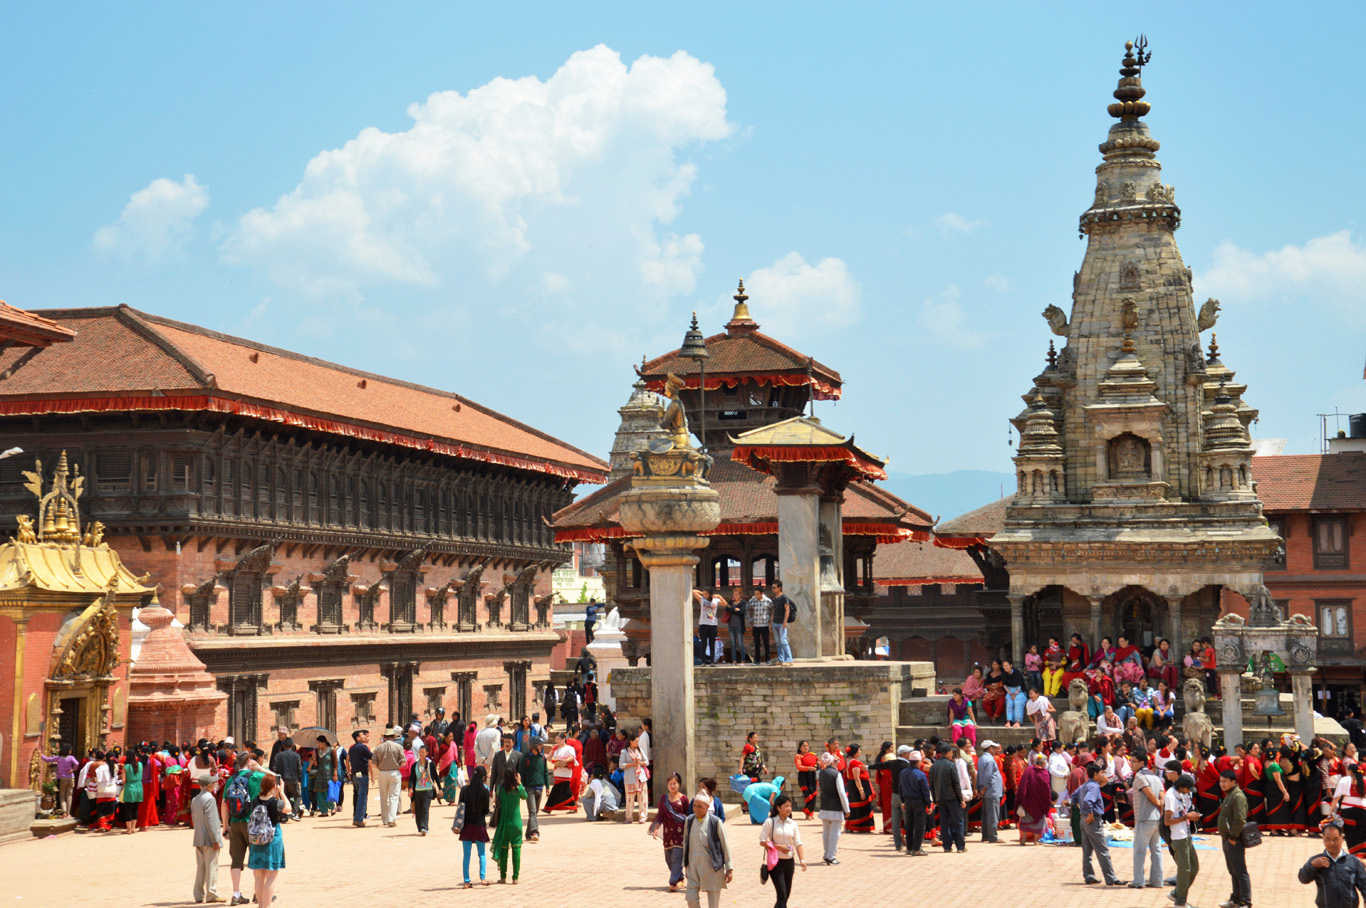 Bhaktapur Durbar Square - for more info and tips how to get there from Kathmandu, check my post here